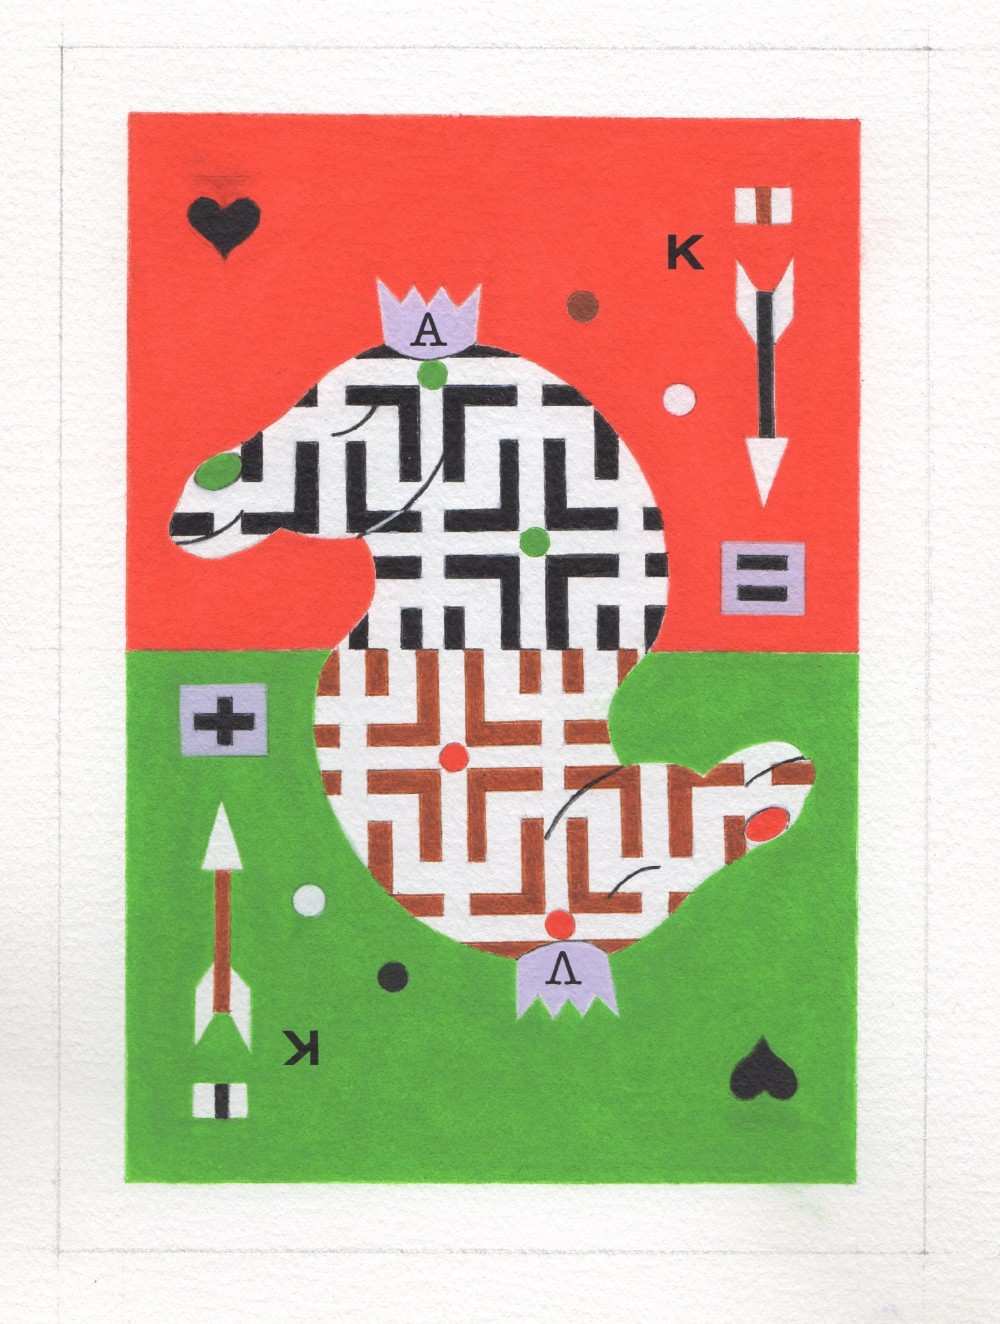 Alexander Vorobyev (Russian, b.1952). 'King of Hearts', watercolour on paper, signed with initials